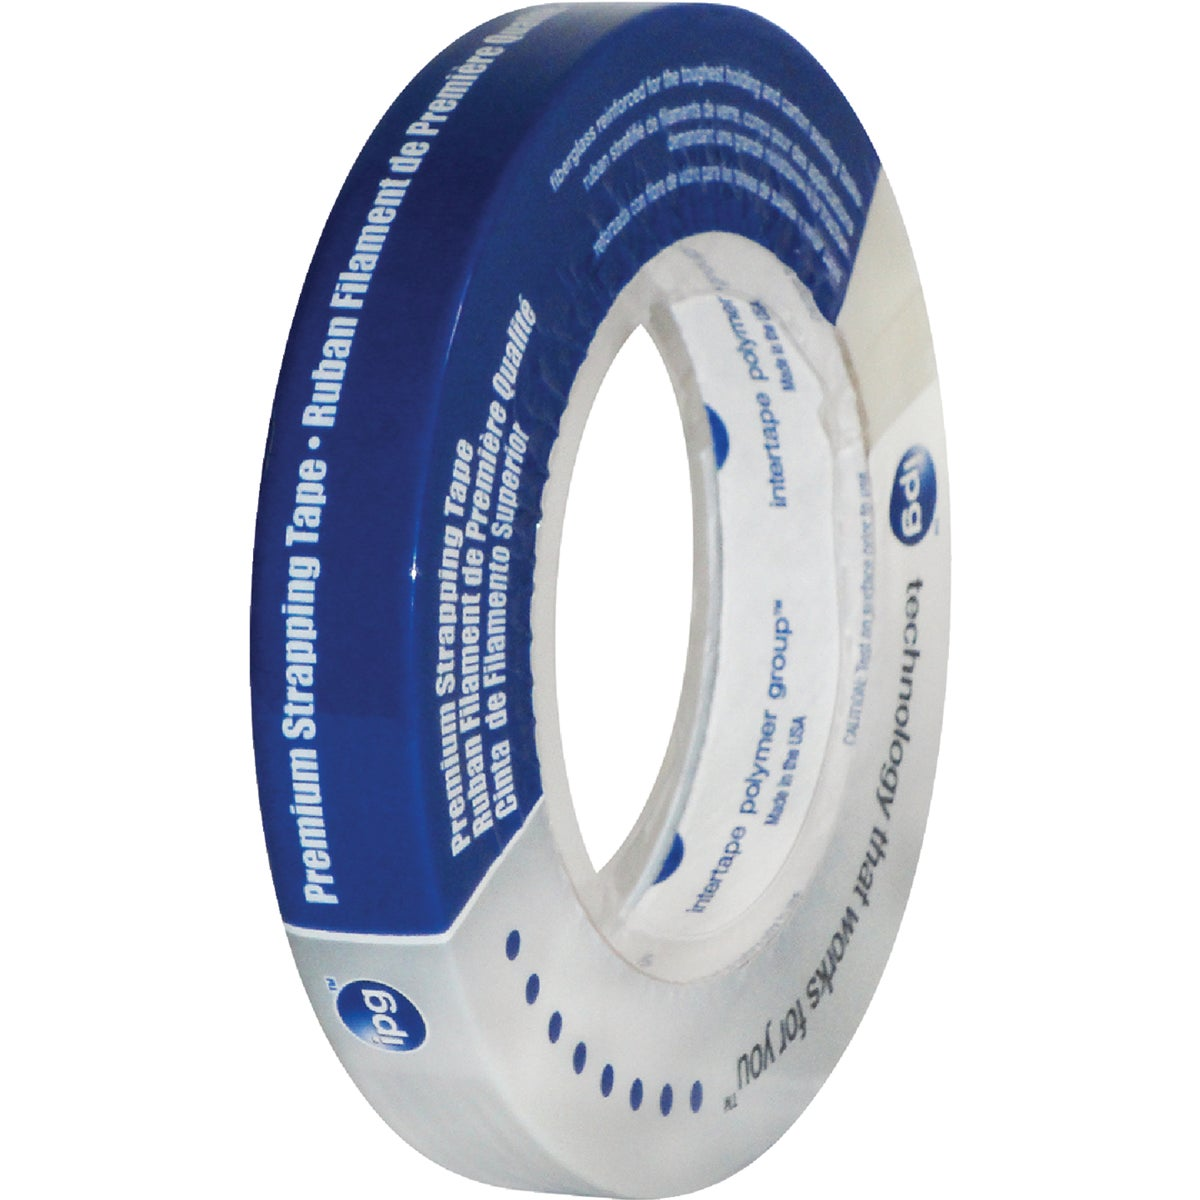 3/4X60 STRAPPING TAPE - 9715 by Intertape Polymer